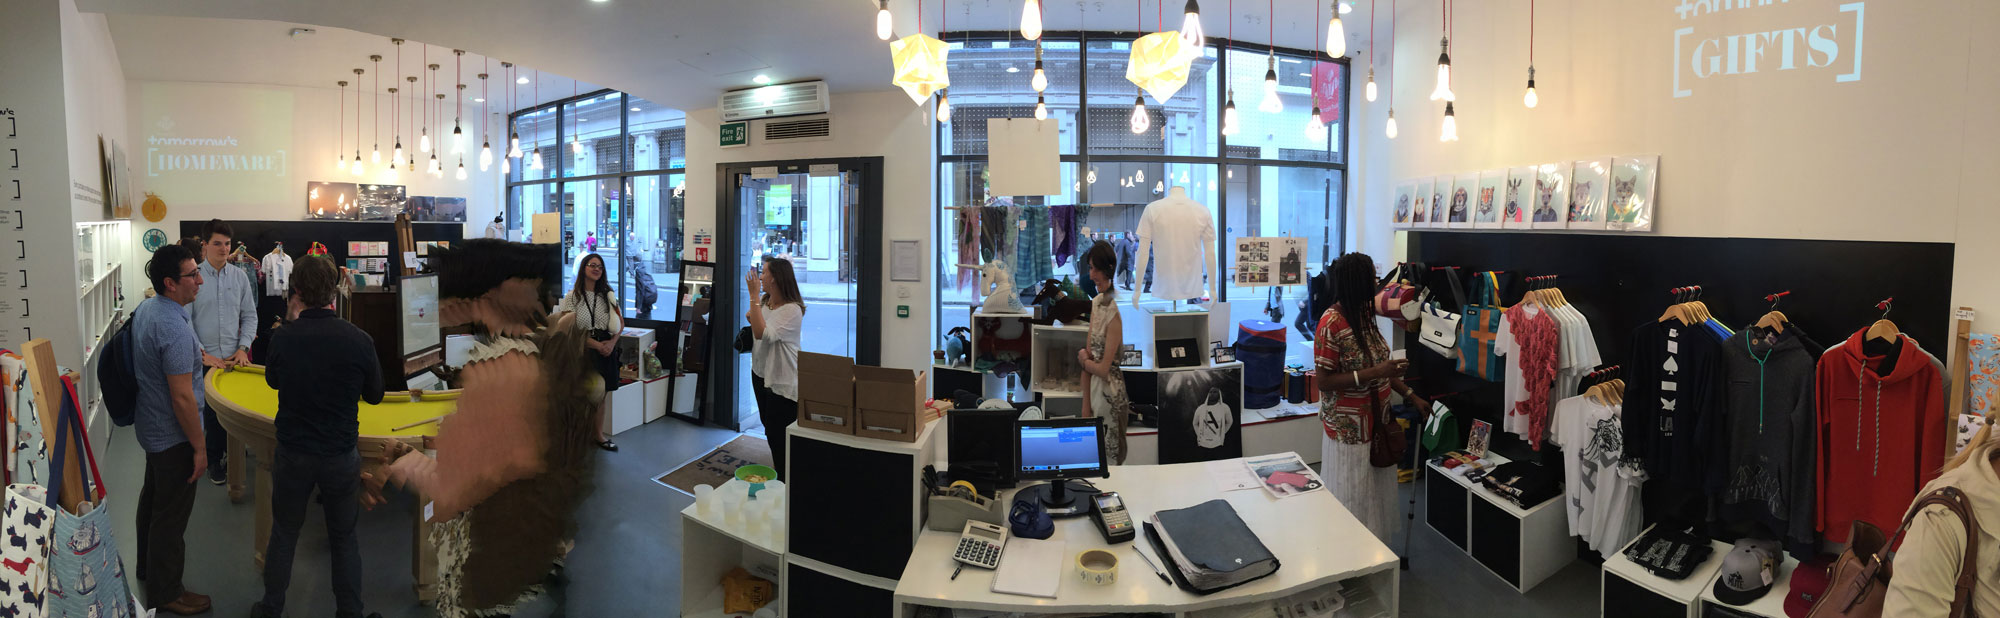 Panoramic view of The Prince's Trust: Tomorrow's Store, on the Father's Day event.